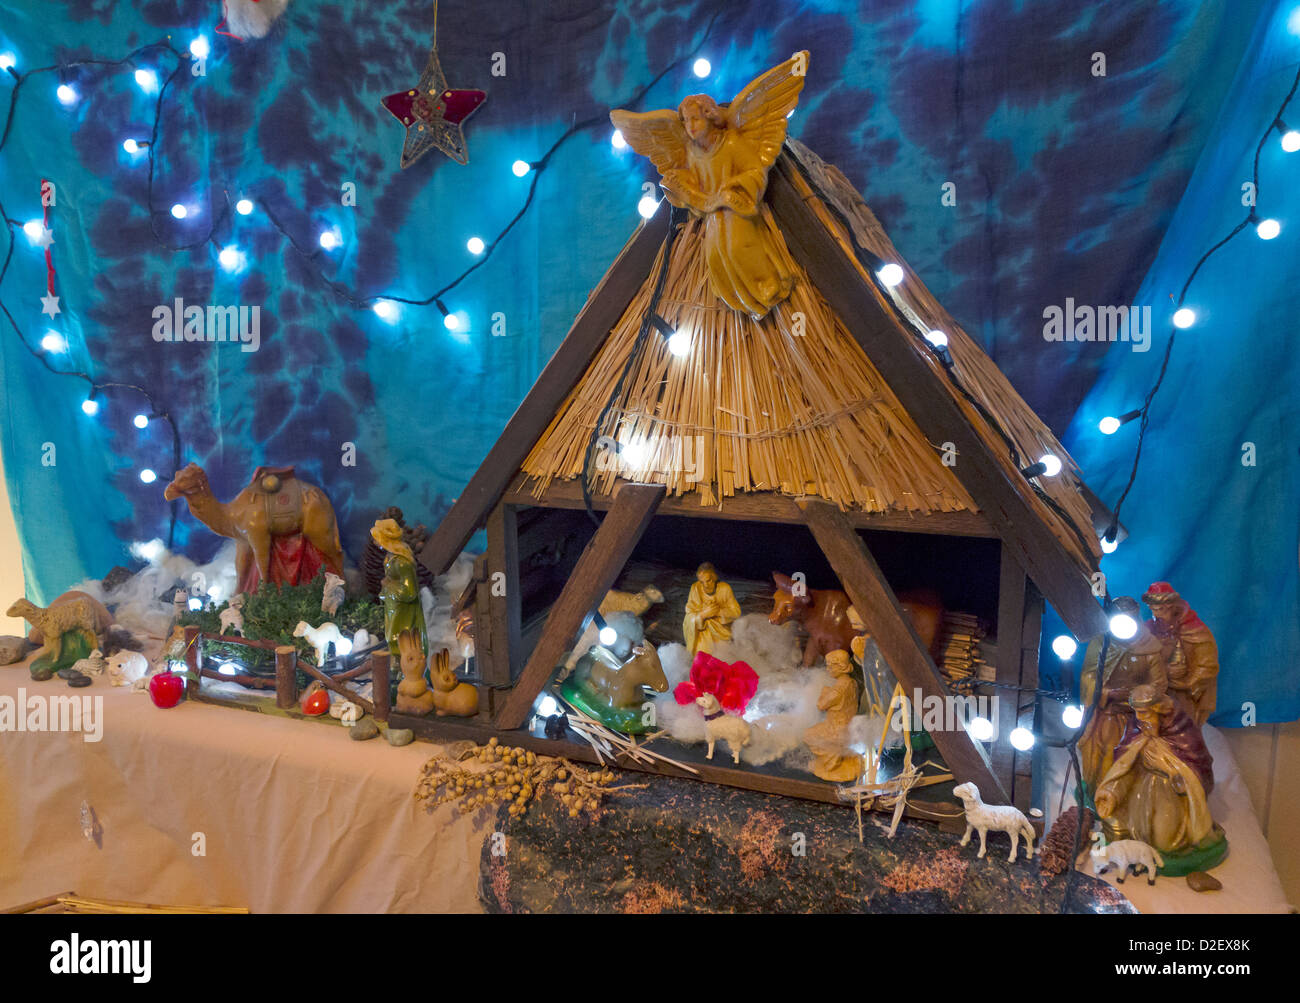 A domestic Christmas crib nativity scene with multiple characters - Stock Image